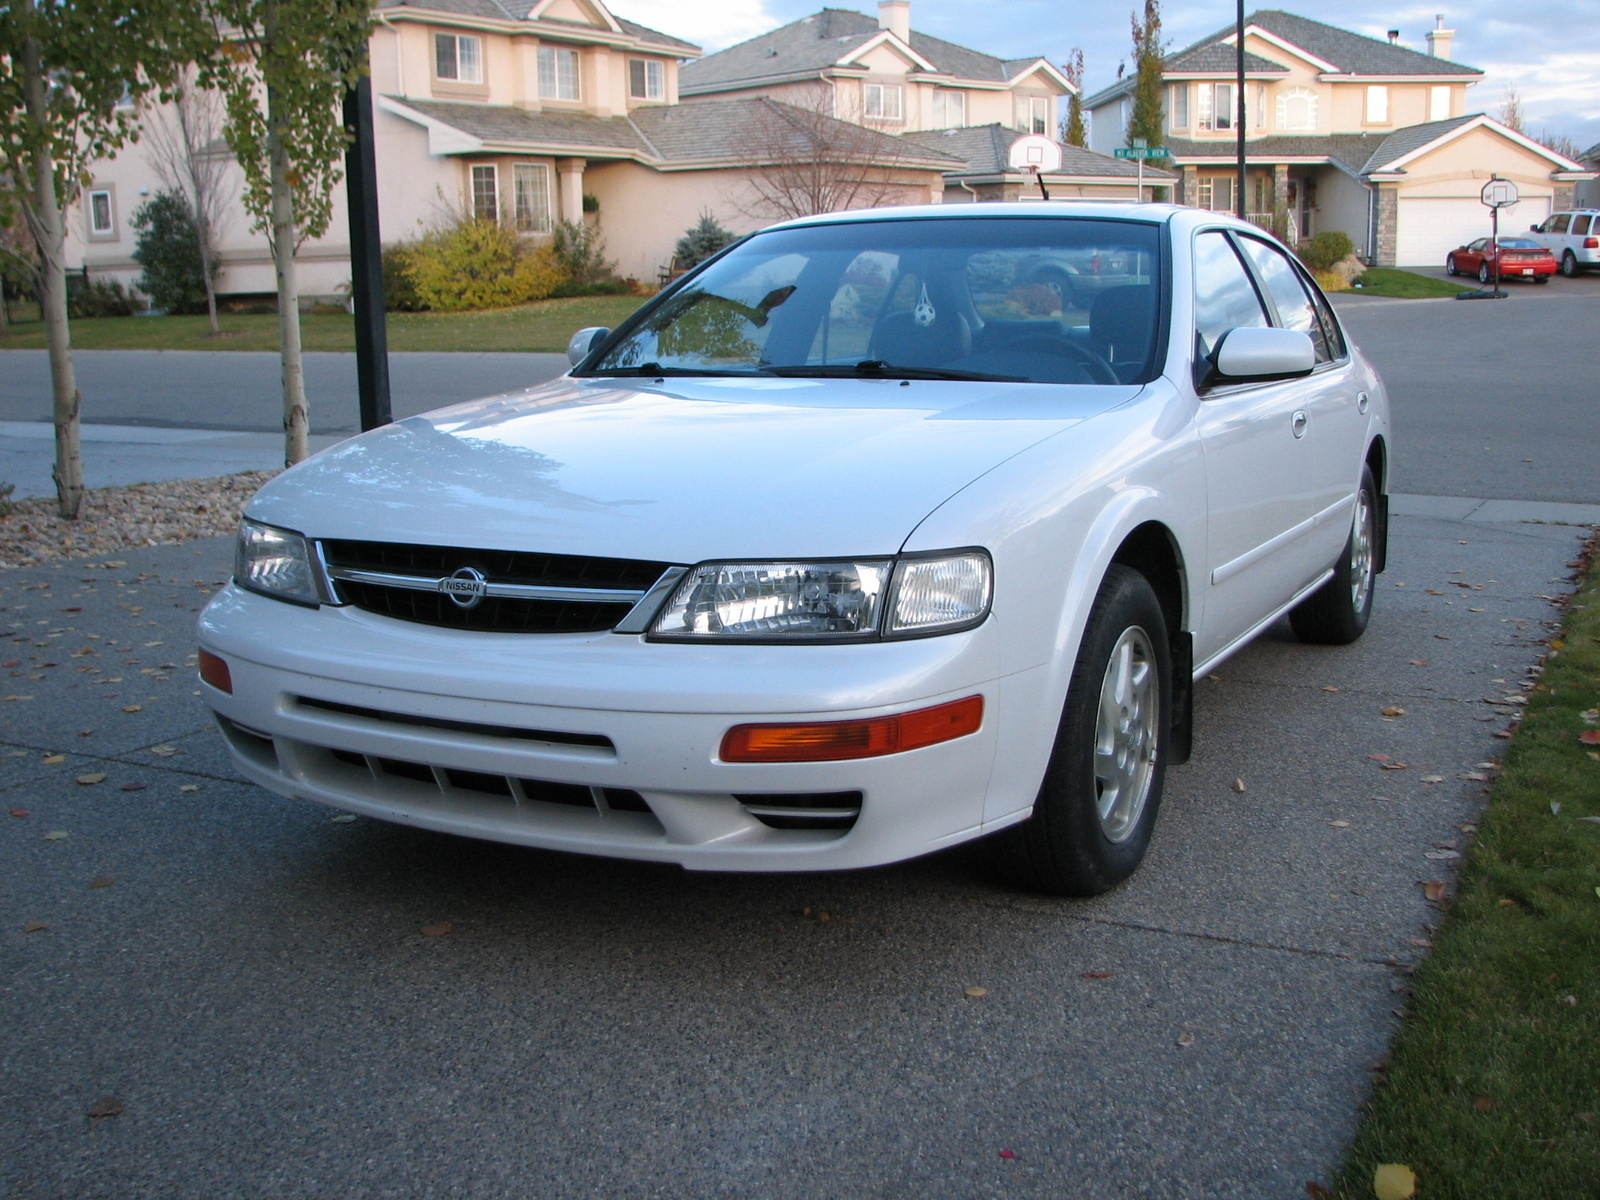 Sunny King Ford >> 1997 Nissan Maxima - Overview - CarGurus